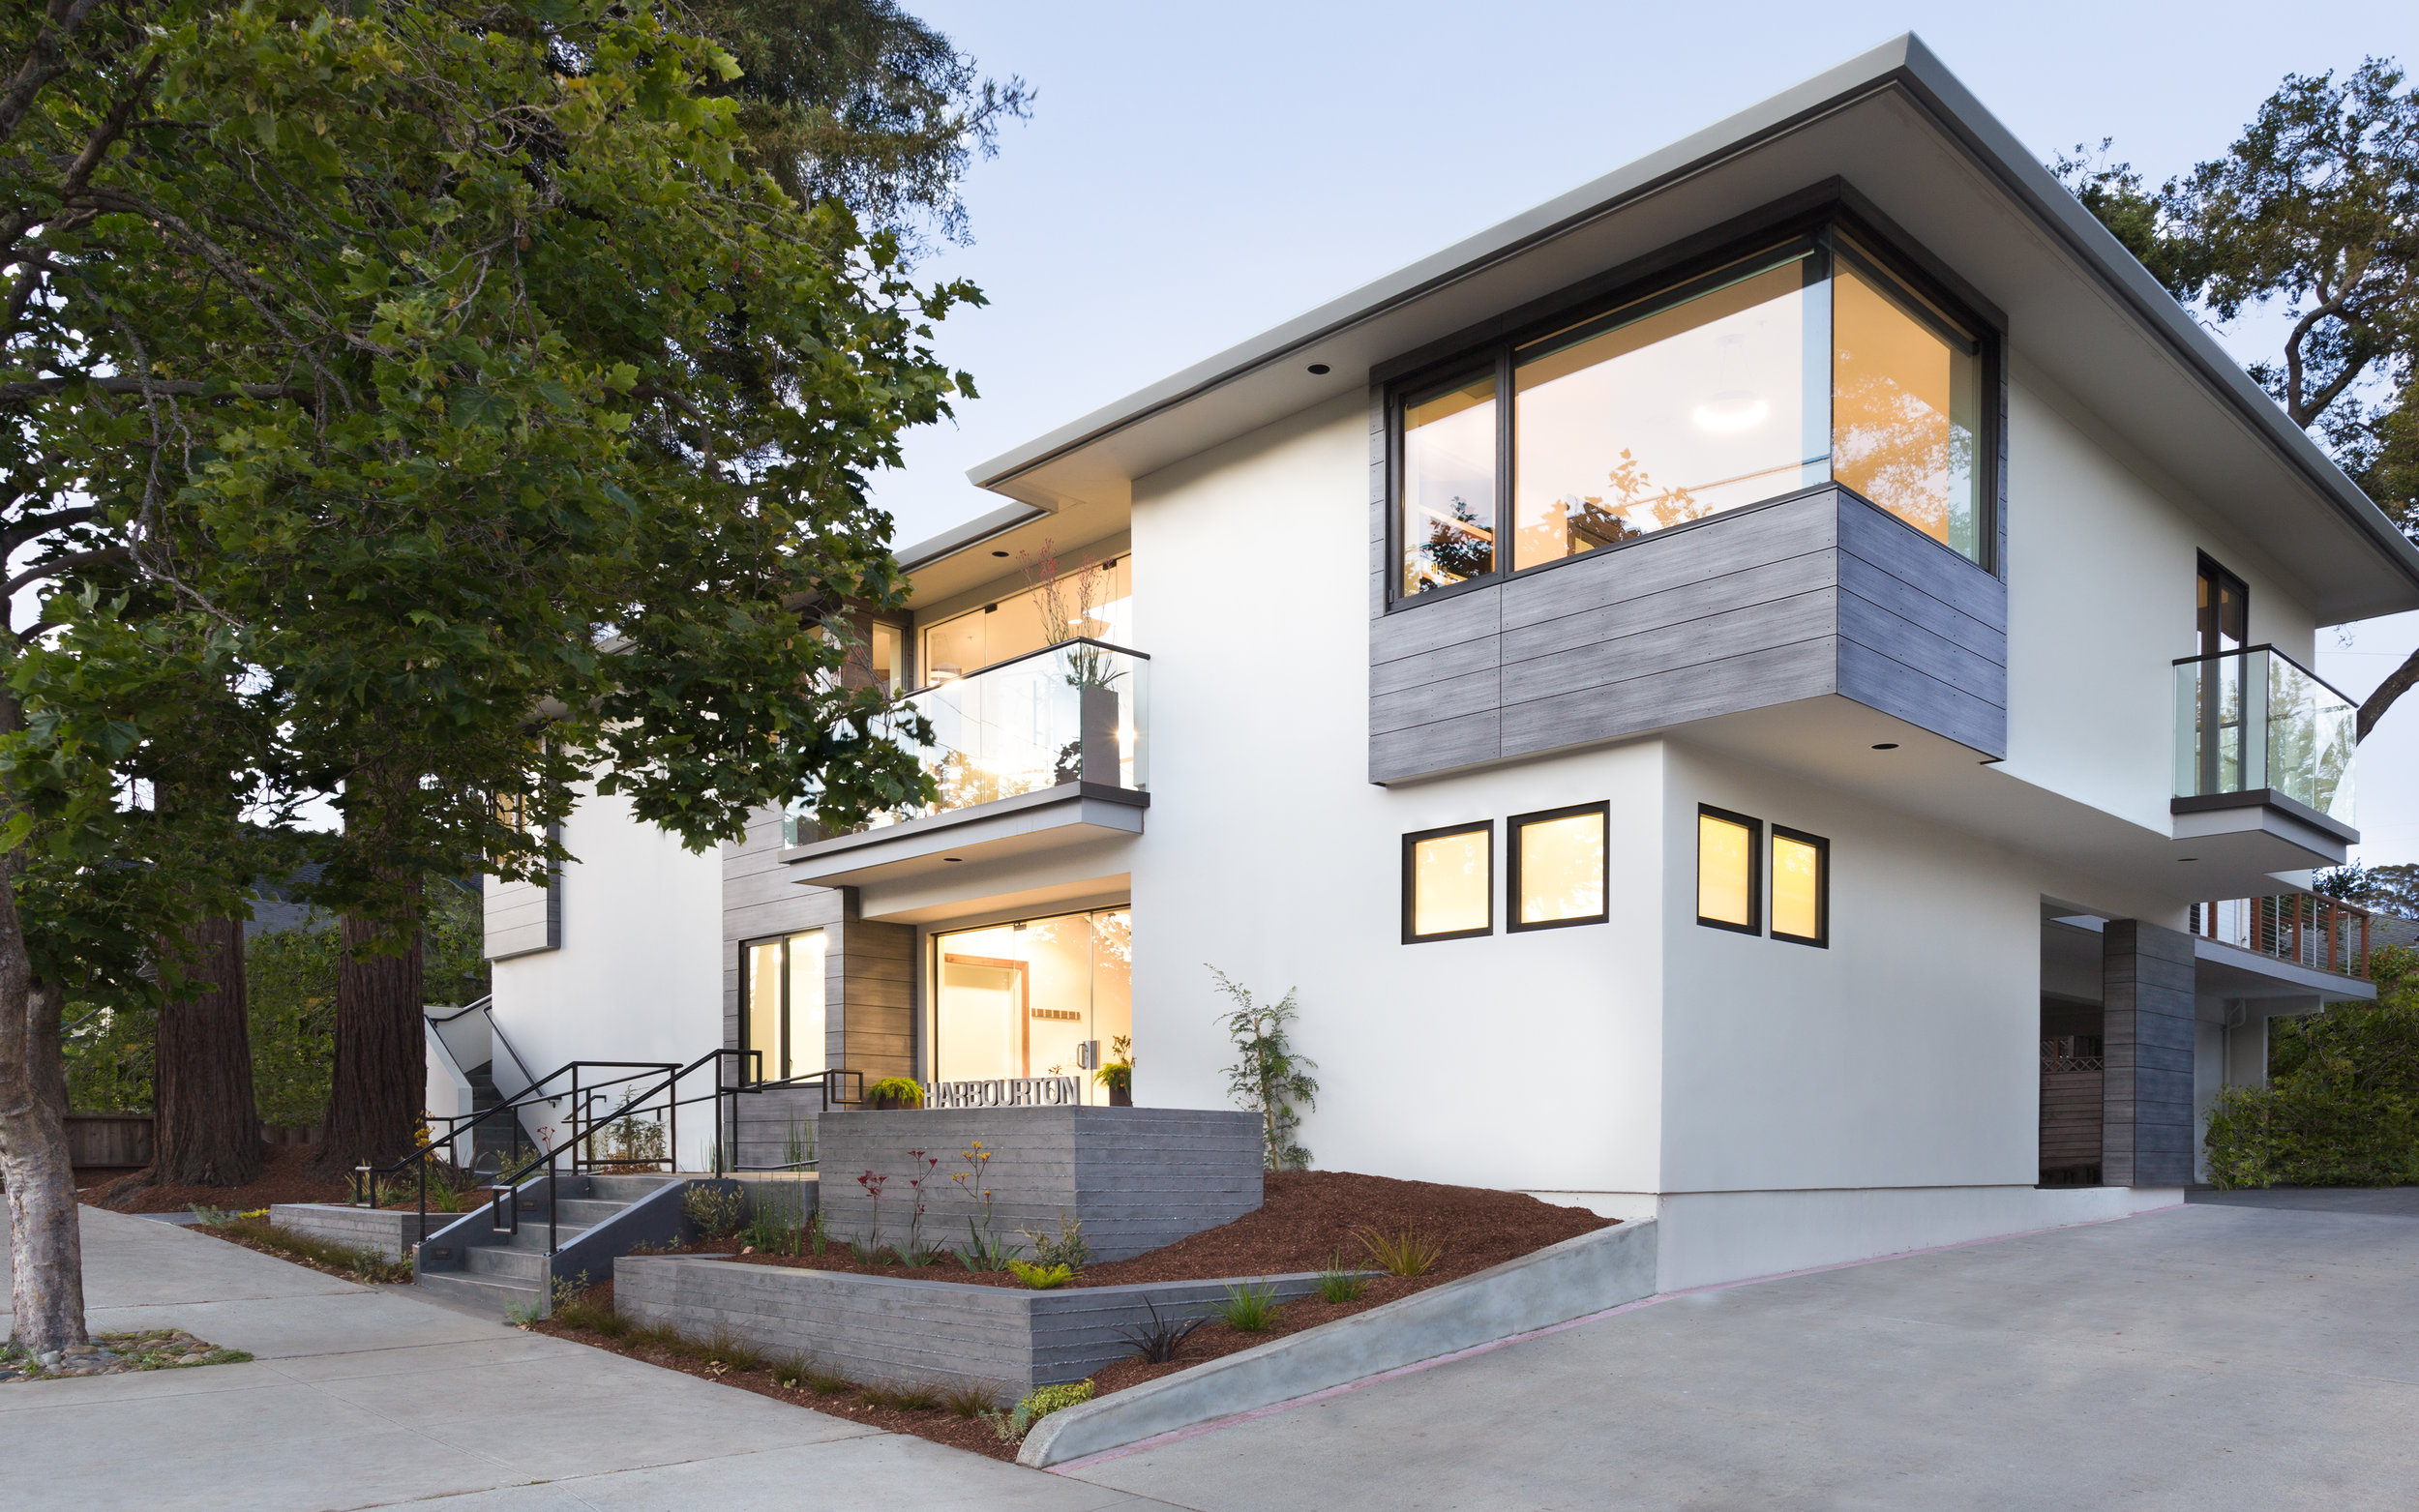 Commercial Office Space in Capitola, California